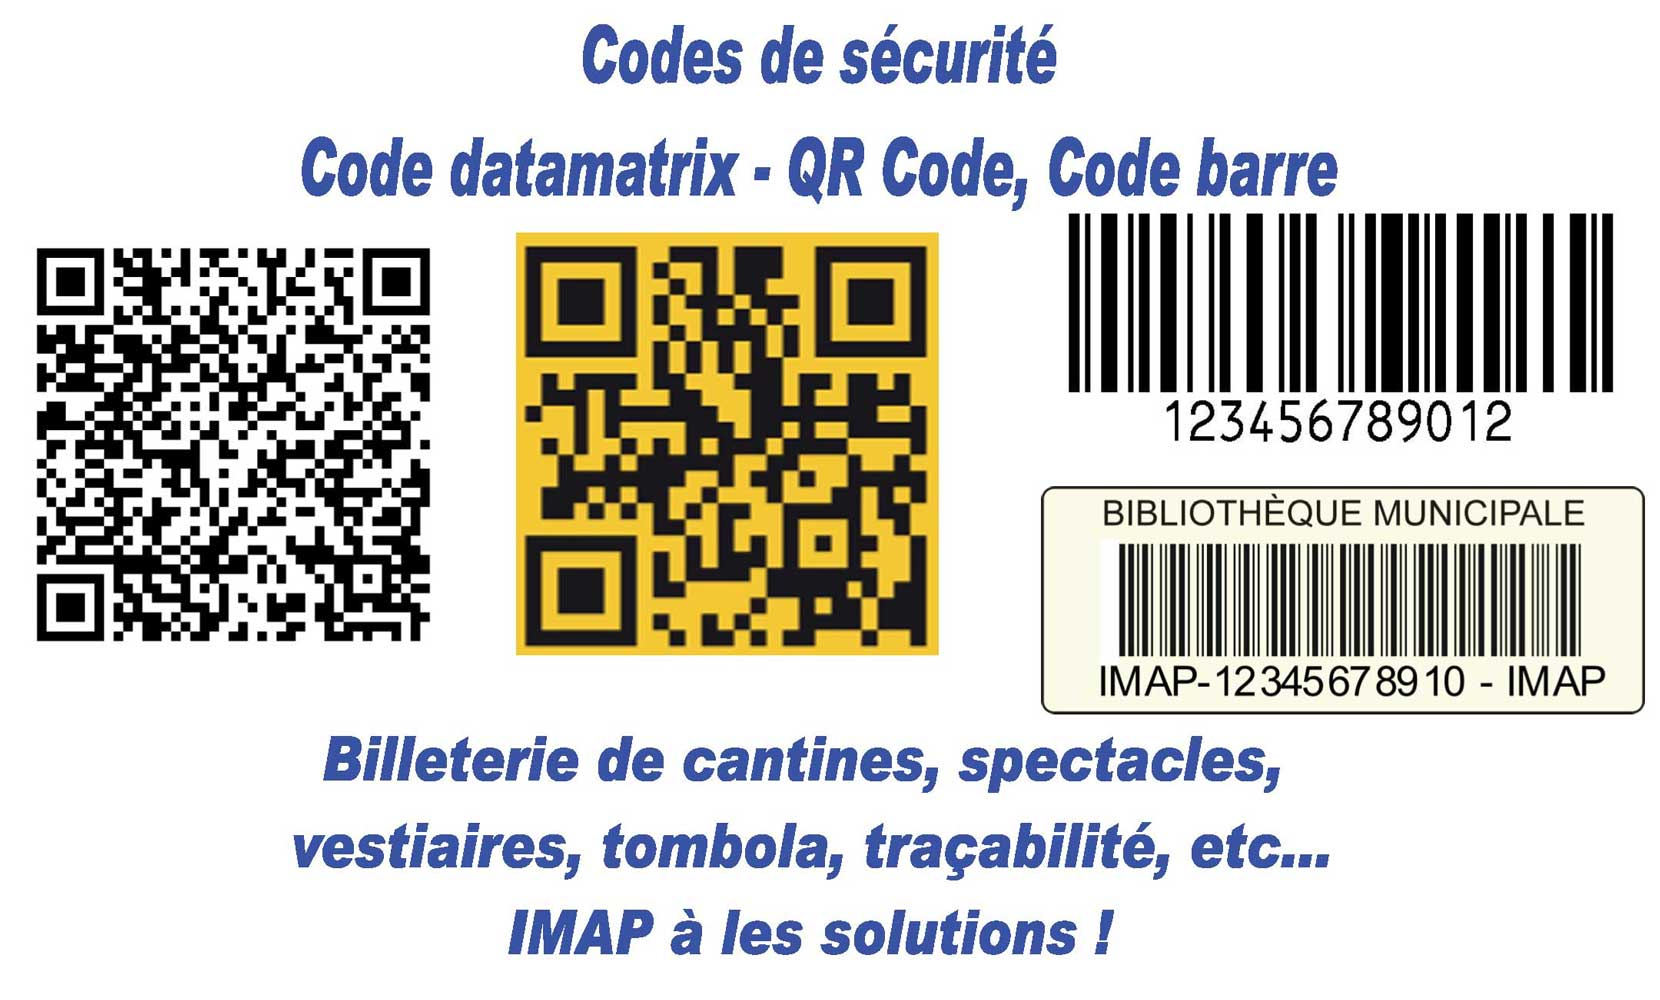 CodesecuriteIMAP